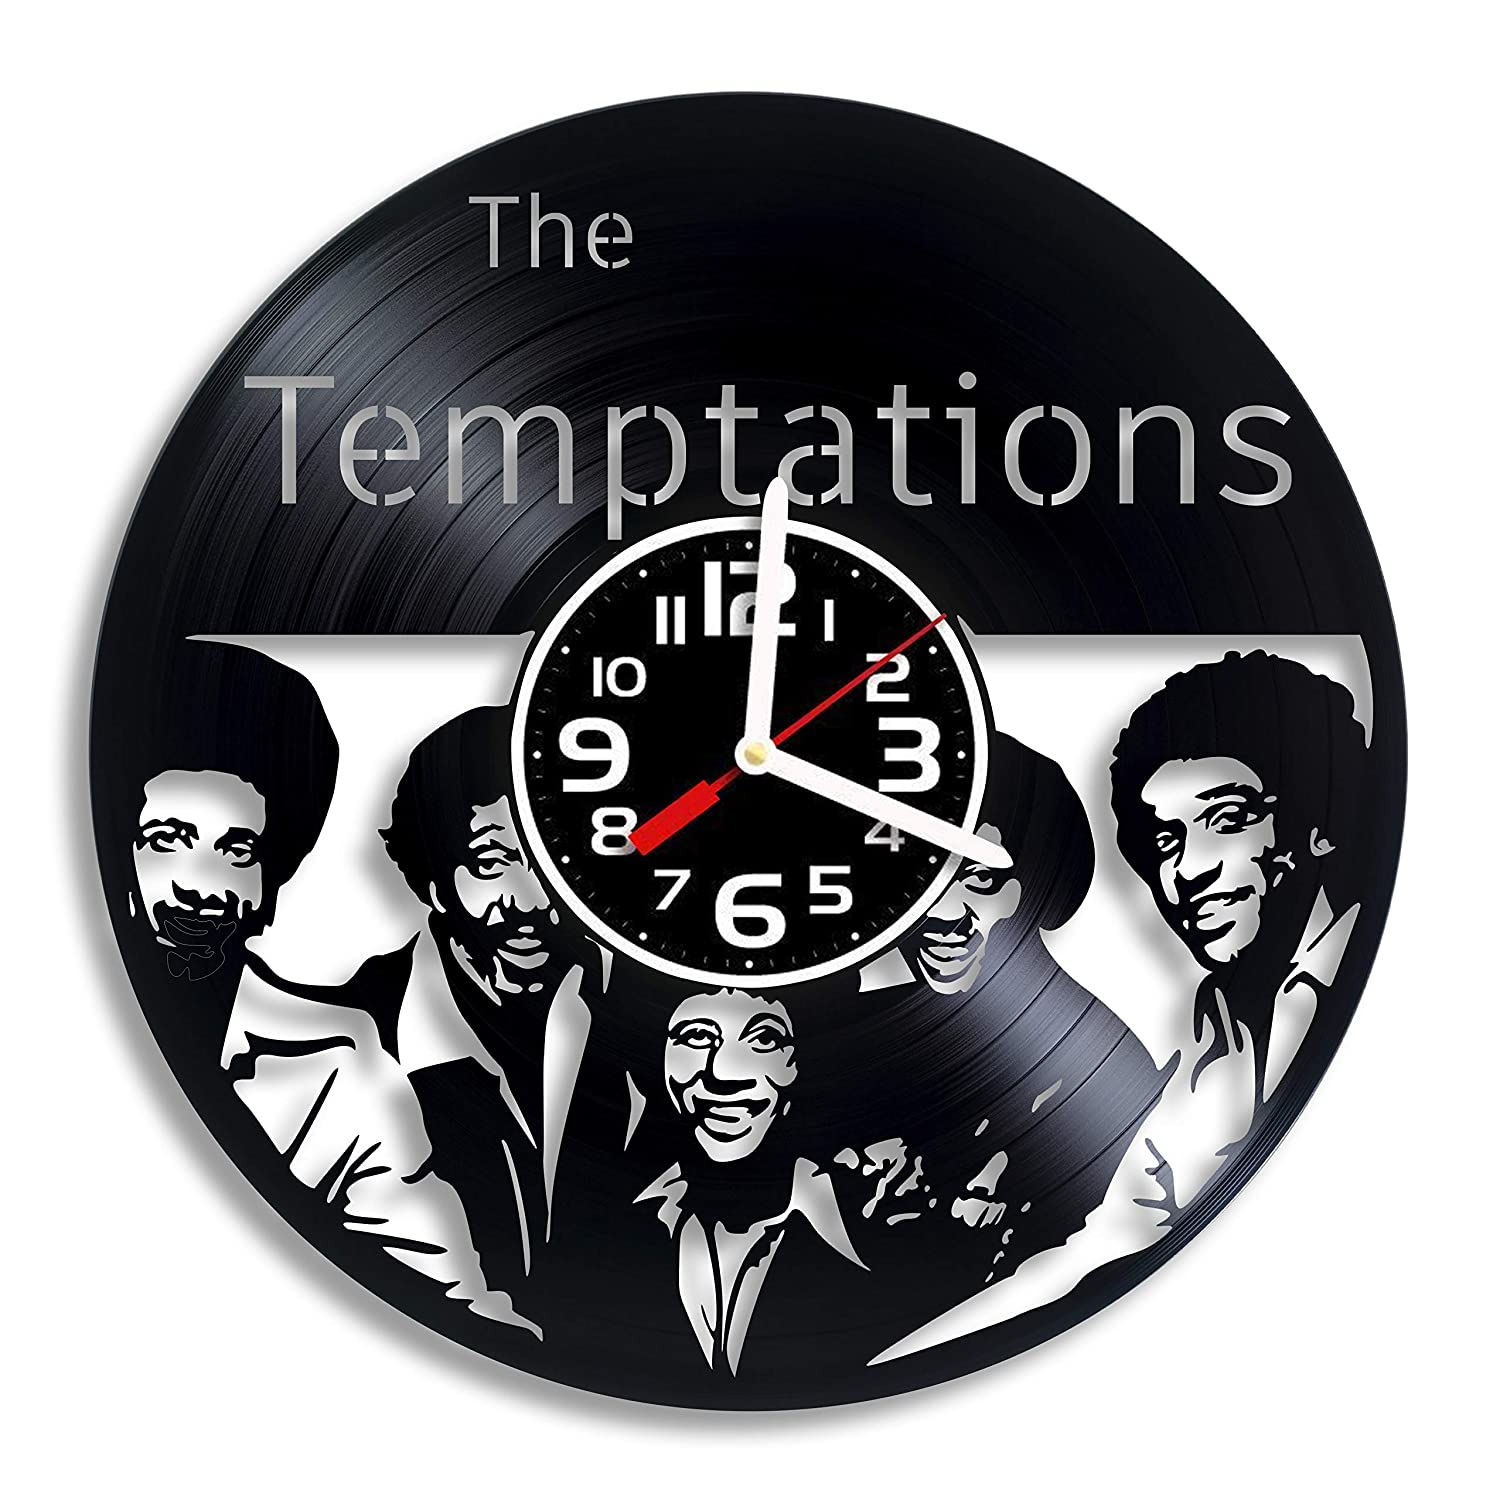 The Temptations Soul Music Art The Temptations Gift For Any Occasion The Temptations Funk Band RaduPUSH The Temptations Vinyl Wall Clock